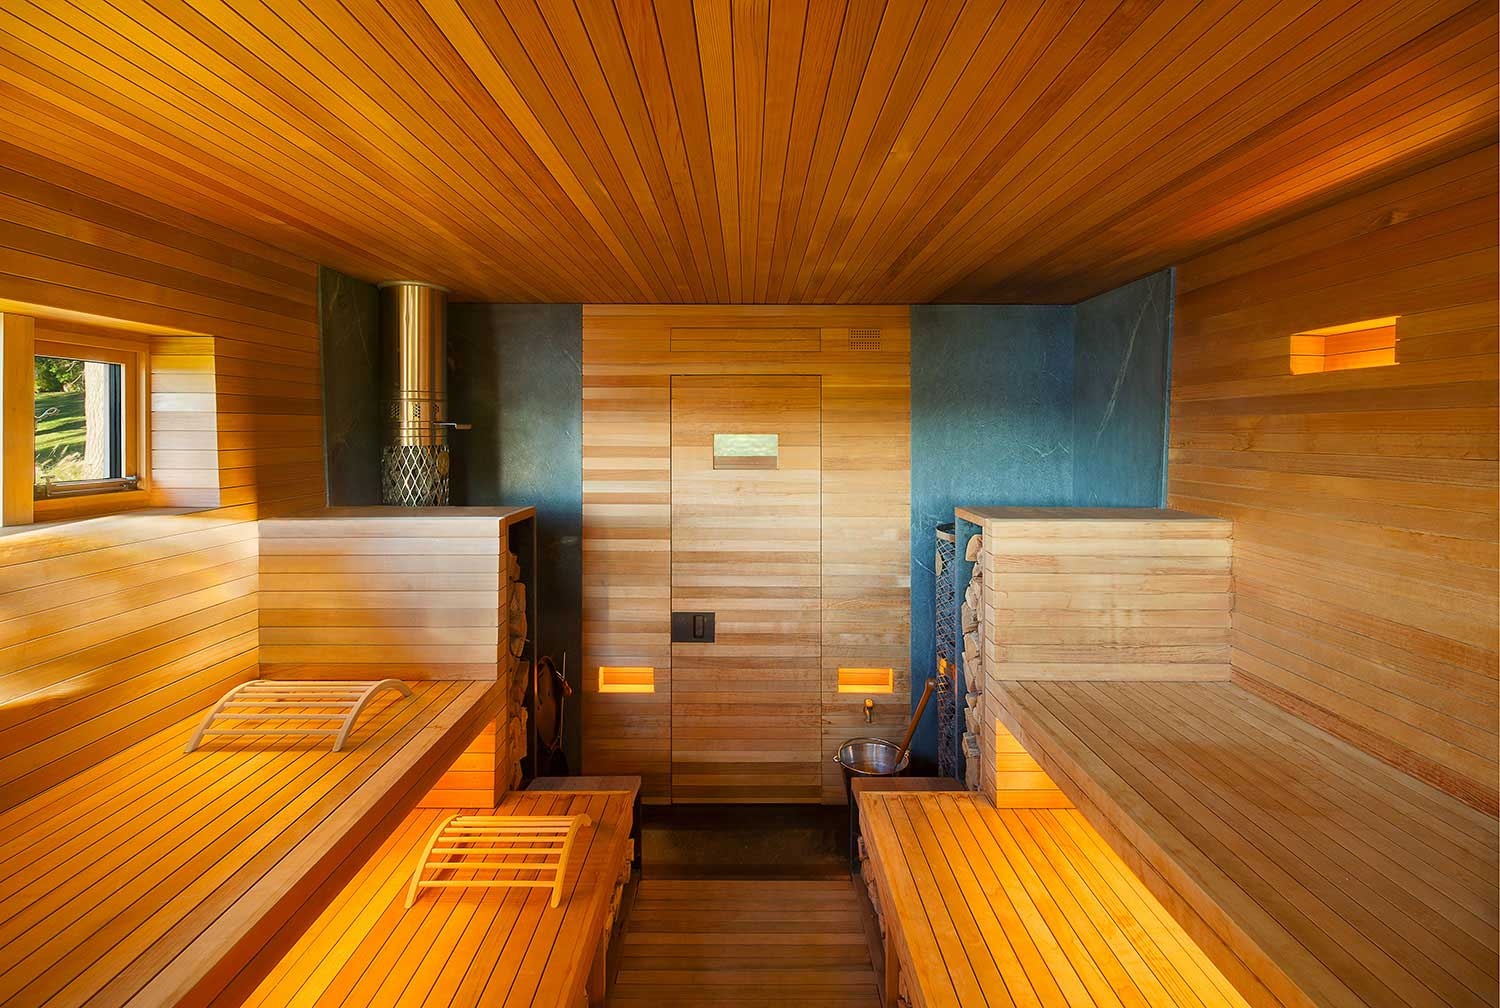 Wooden Sauna Welcomes Guests To Sweat Out The Stress Of